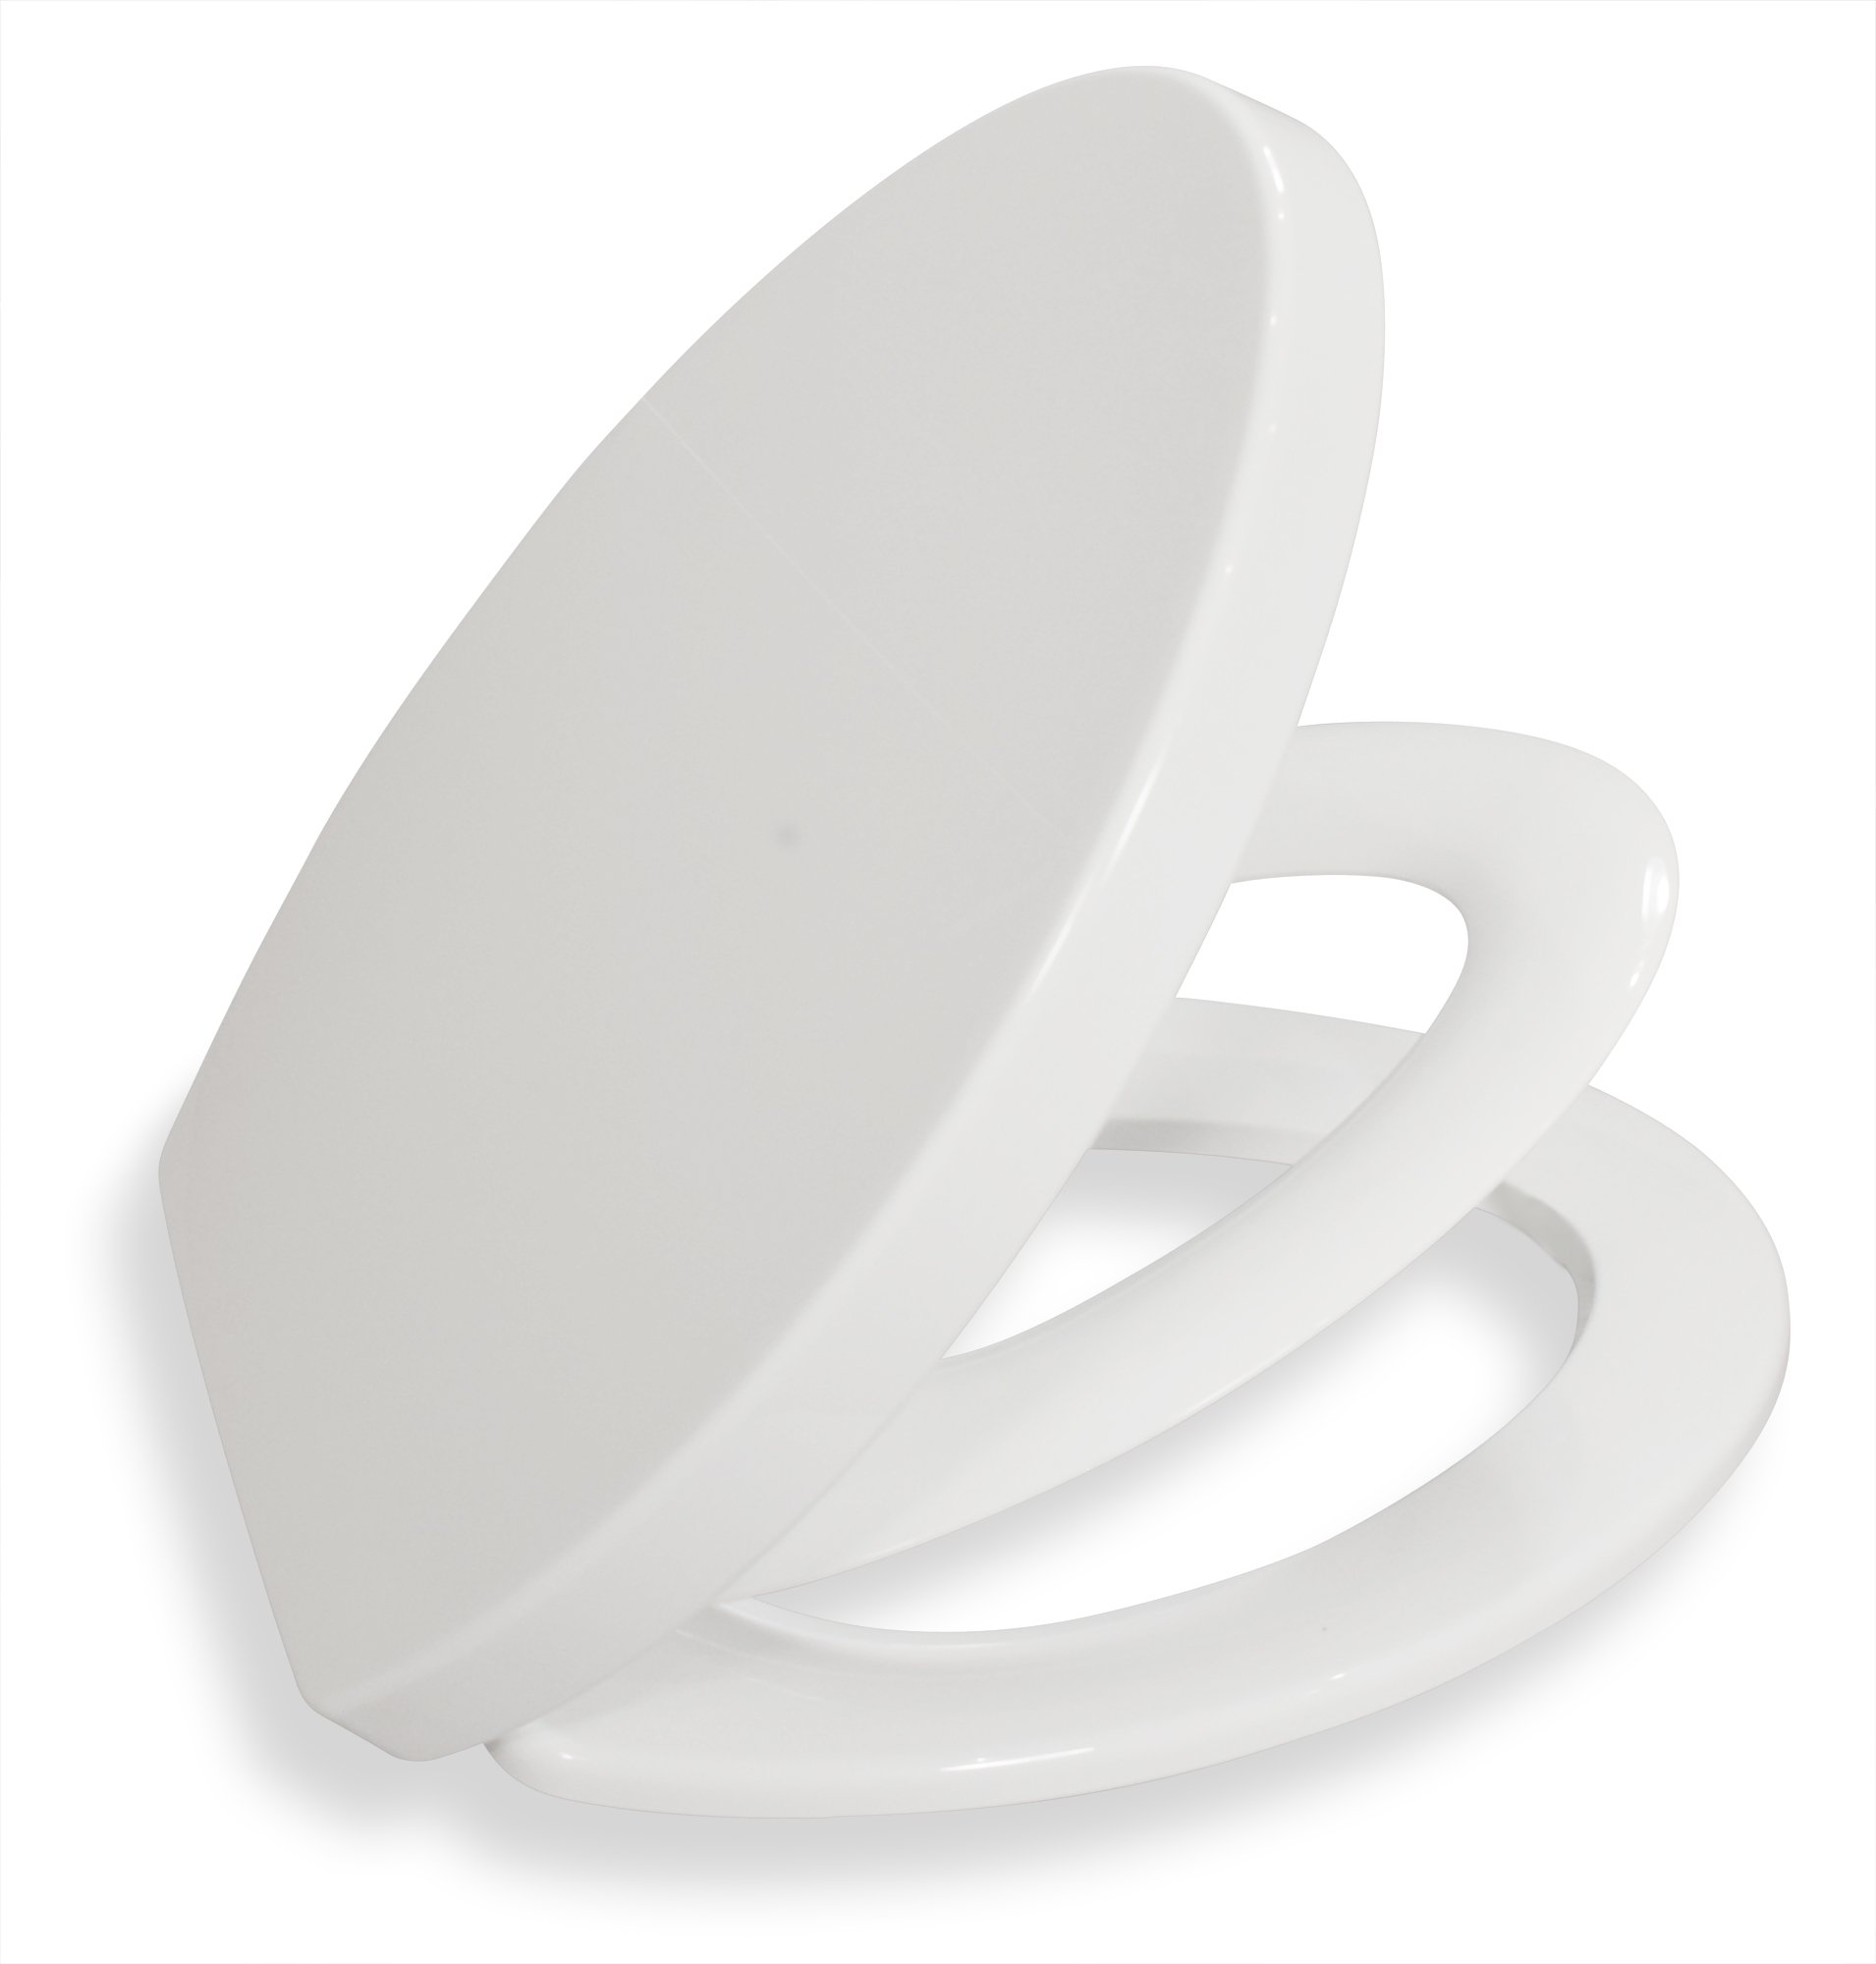 Bath Royale Premium Elongated Family Toilet Seat with Built-In Child Seat and Cover, White, Slow-Close, Quick-Release for Easy Cleaning. Fits All Elongated Toilets